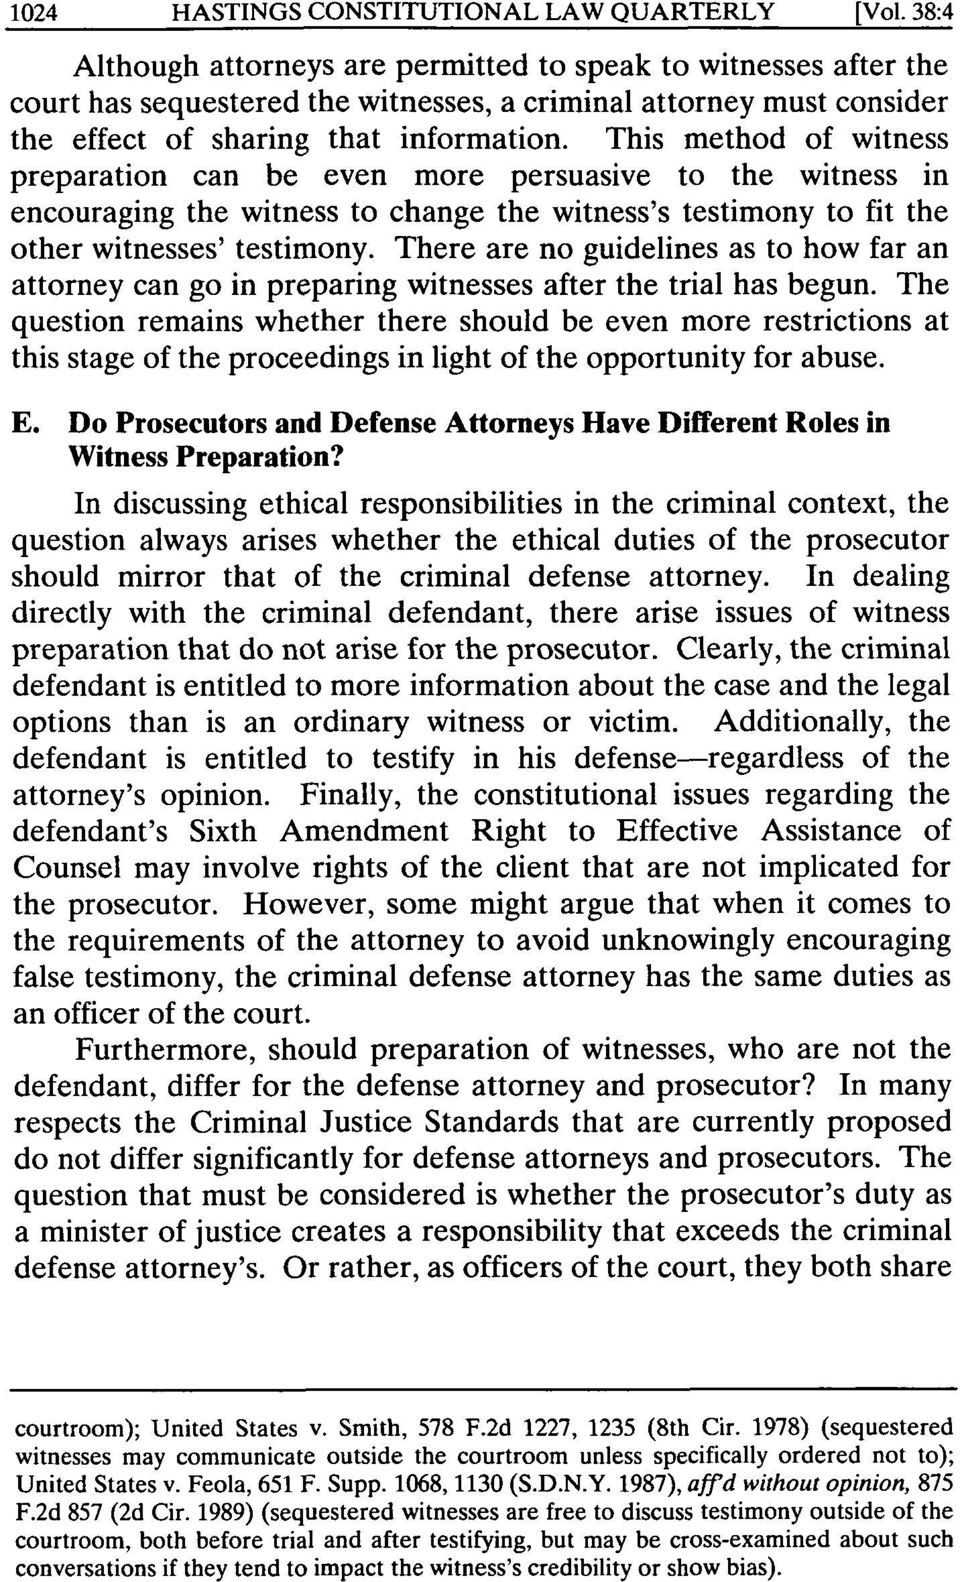 This method of witness preparation can be even more persuasive to the witness in encouraging the witness to change the witness's testimony to fit the other witnesses' testimony.